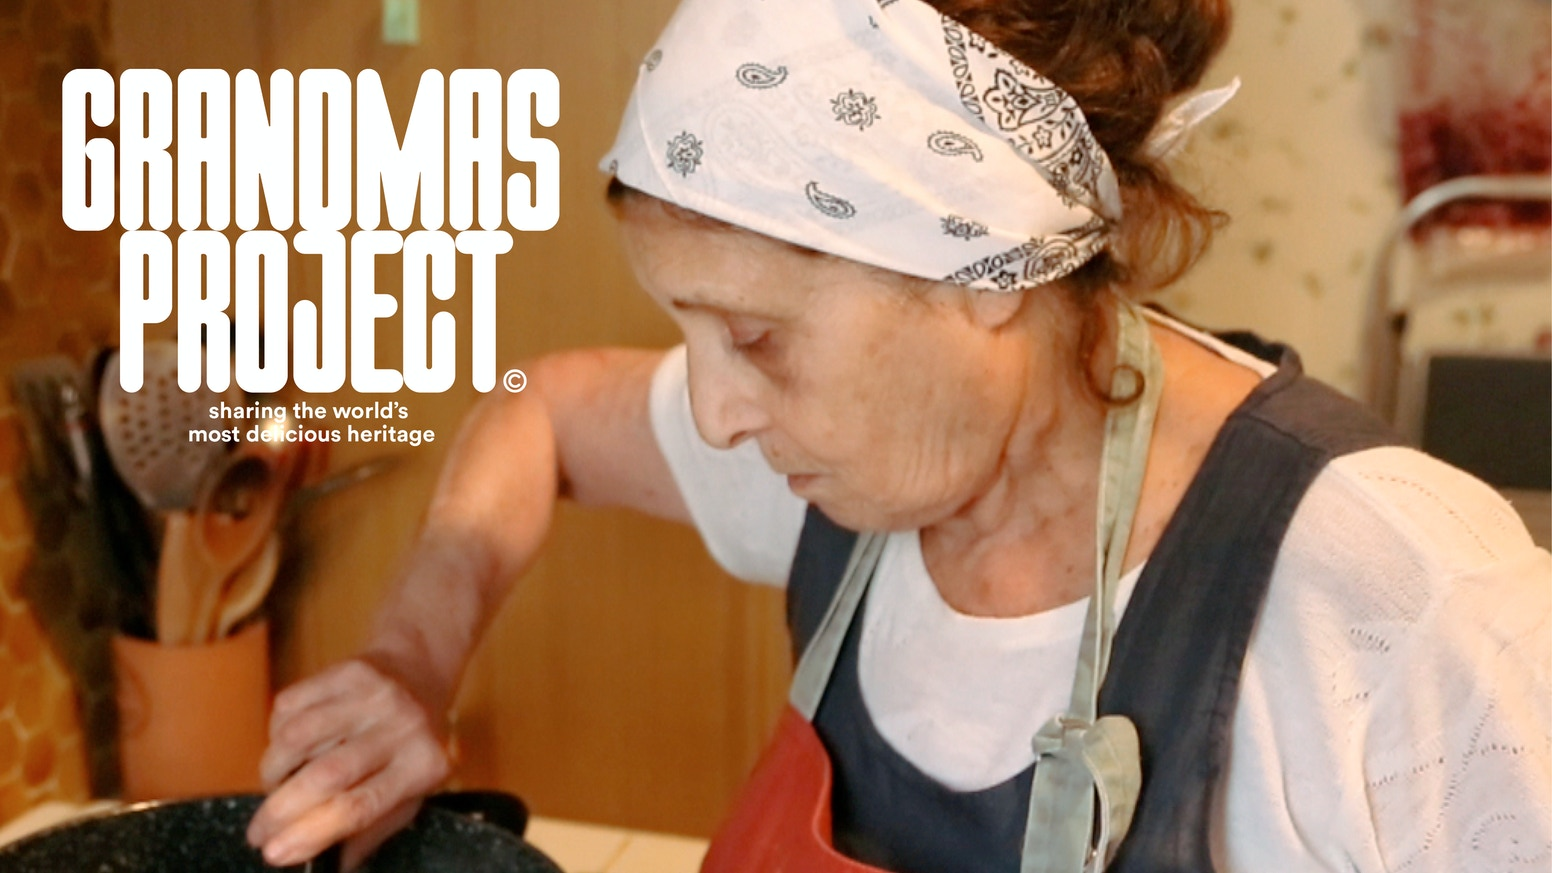 Recipes and stories from grandmas around the world, filmed by their grandchildren.